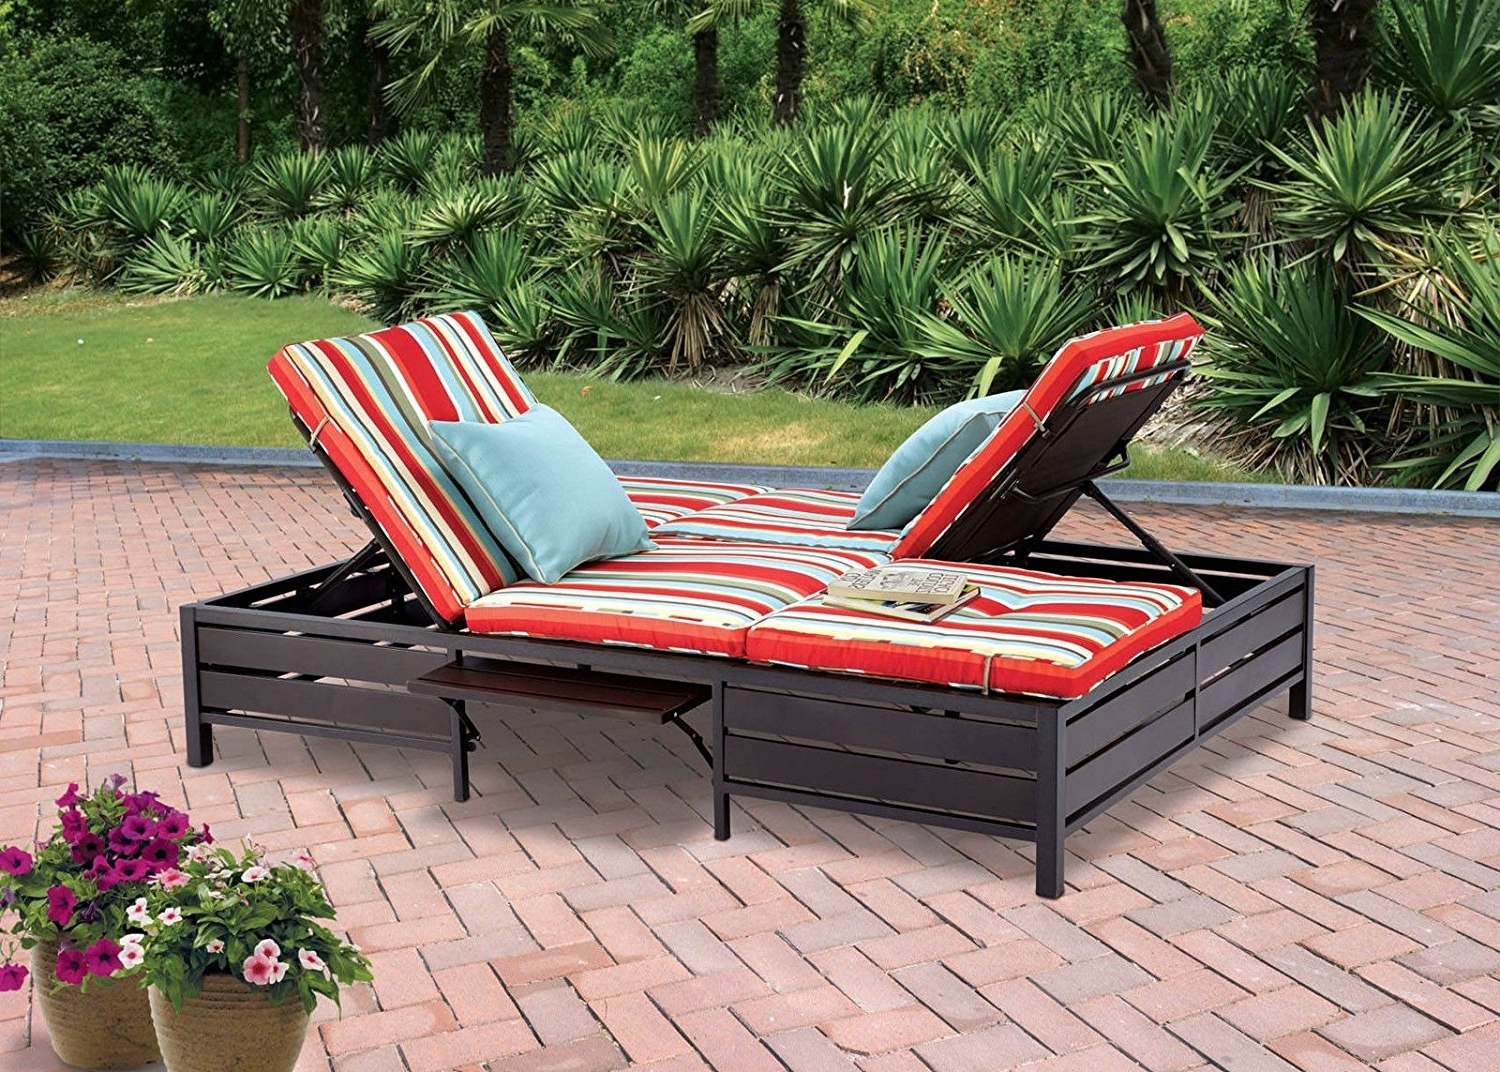 Double Chaise Lounges For Outdoor Throughout Most Up To Date Amazon : Double Chaise Lounger – This Red Stripe Outdoor (View 3 of 15)